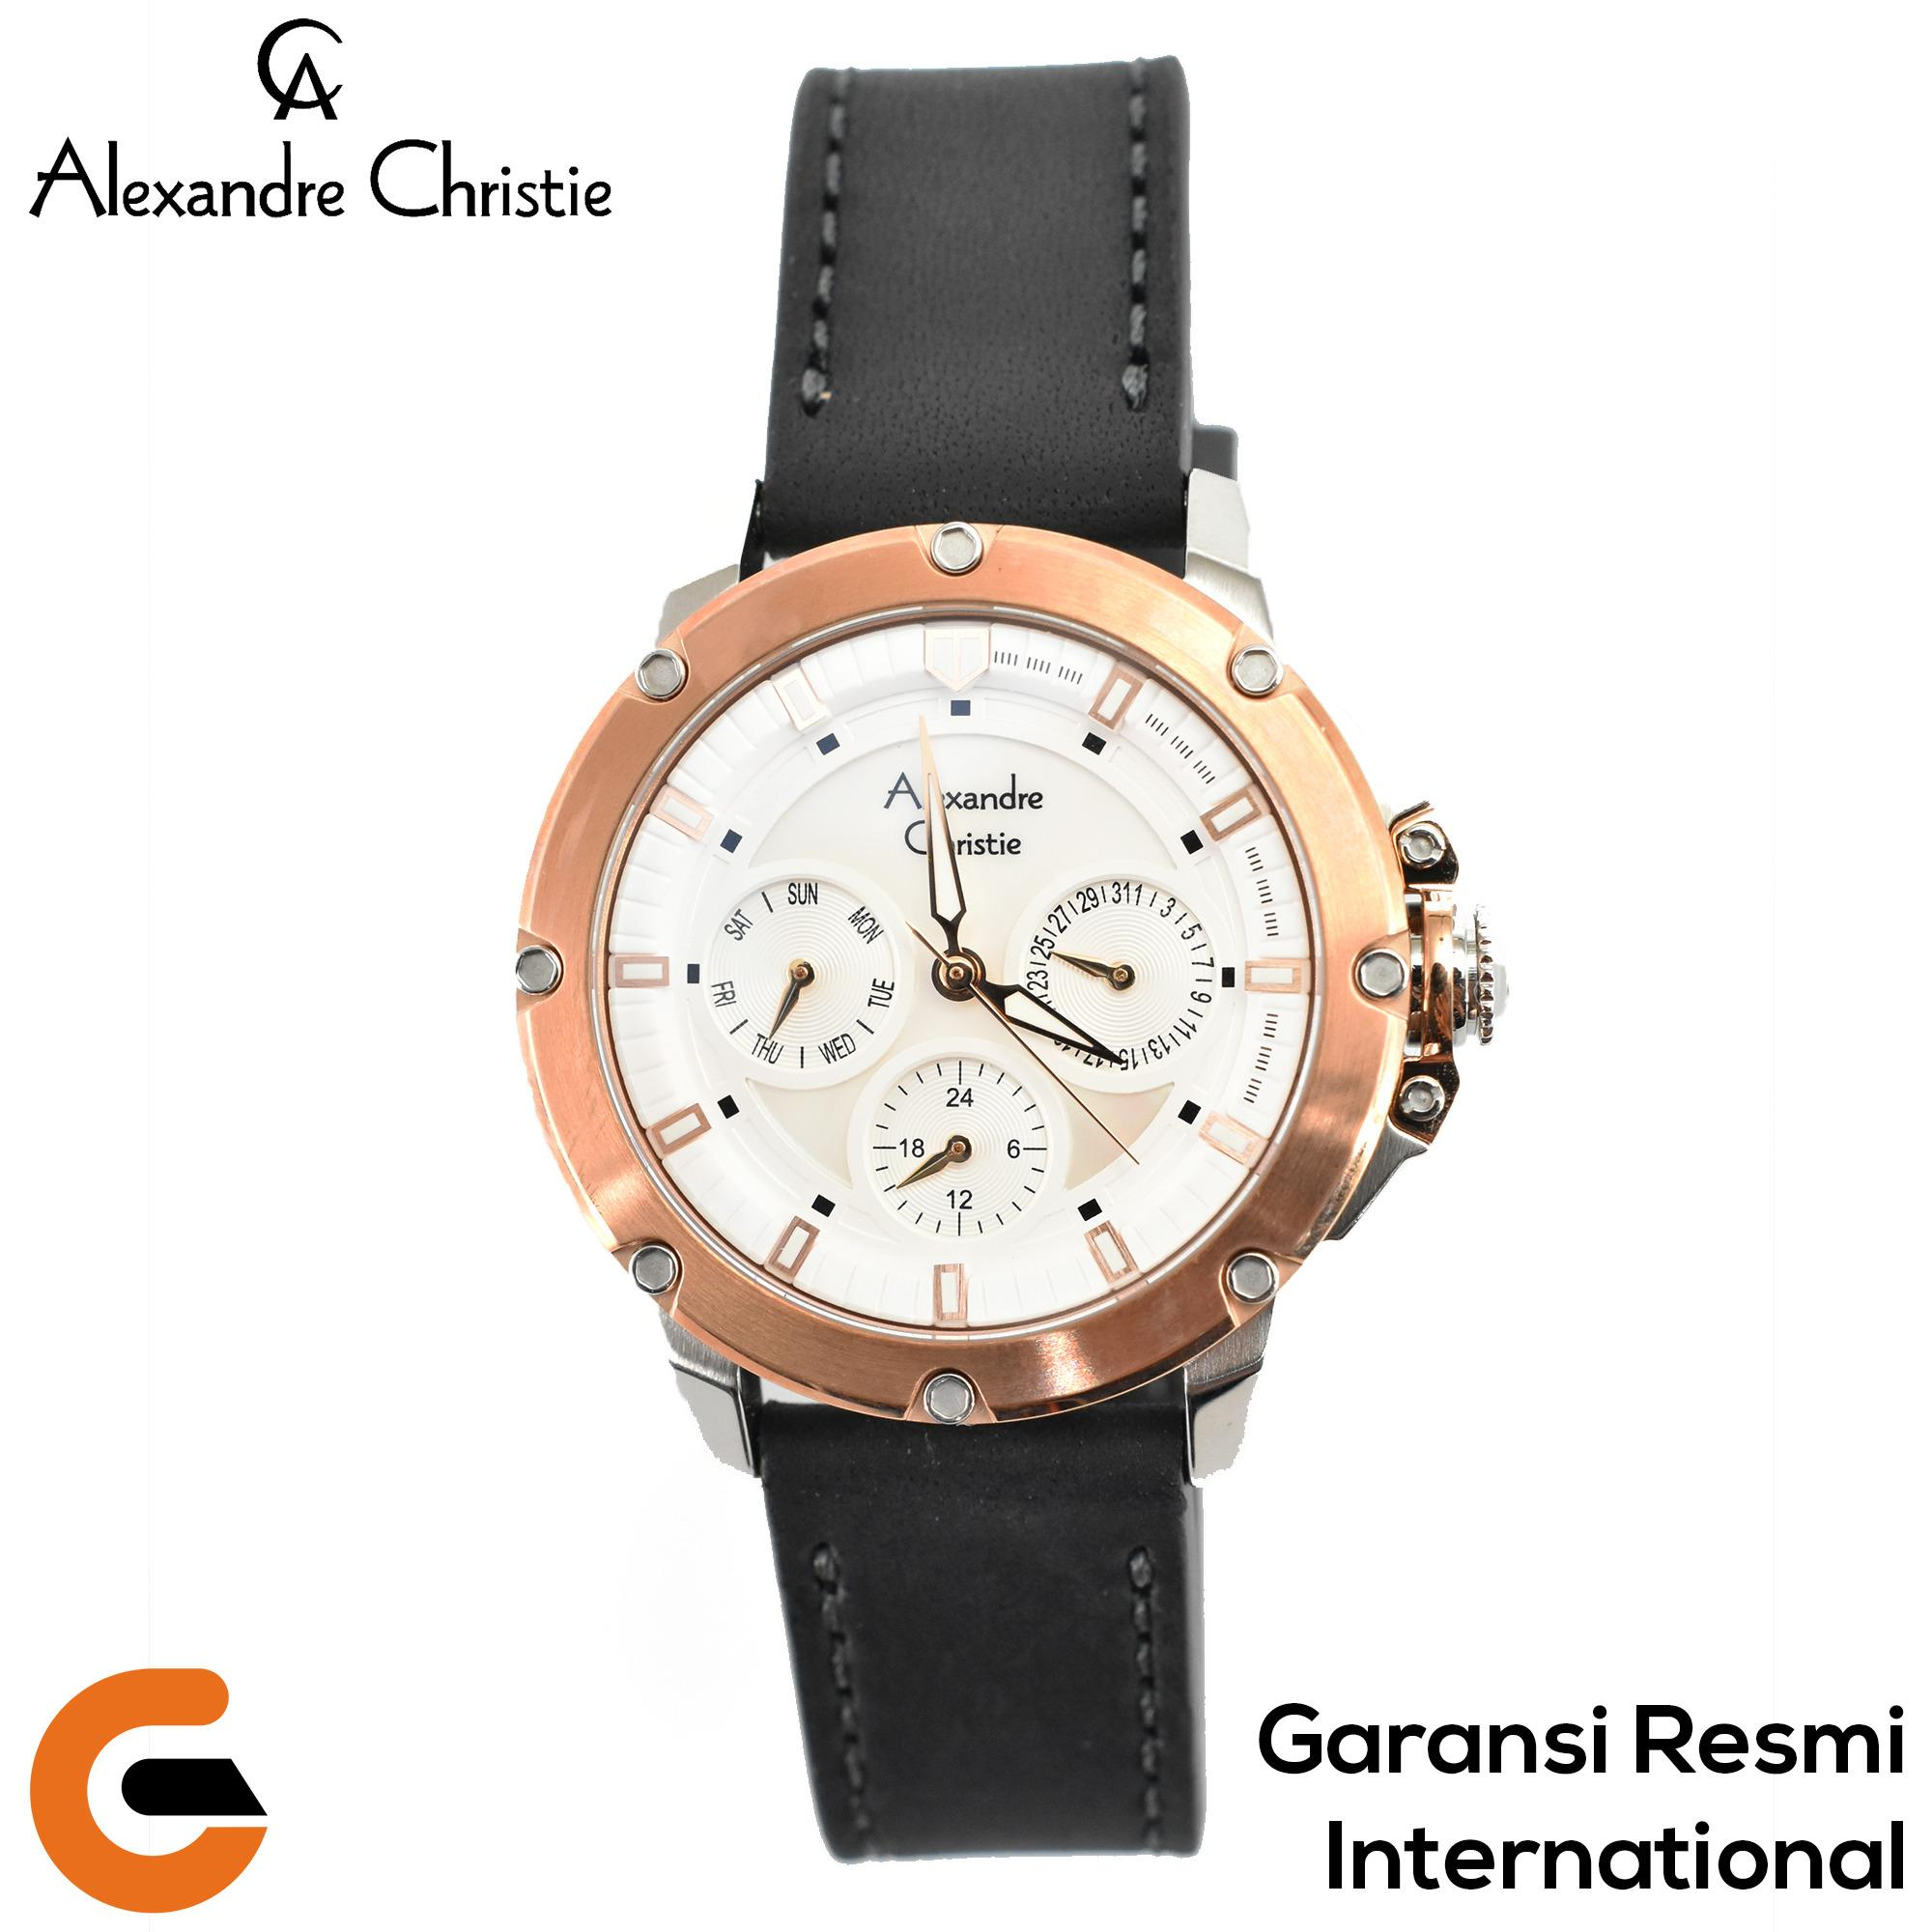 Fossil Ch Jam Tangan Pria Cokelat Strap Kulit 2890 Spec Dan Daftar Expedition E6665m Leather Gold Home Page 4